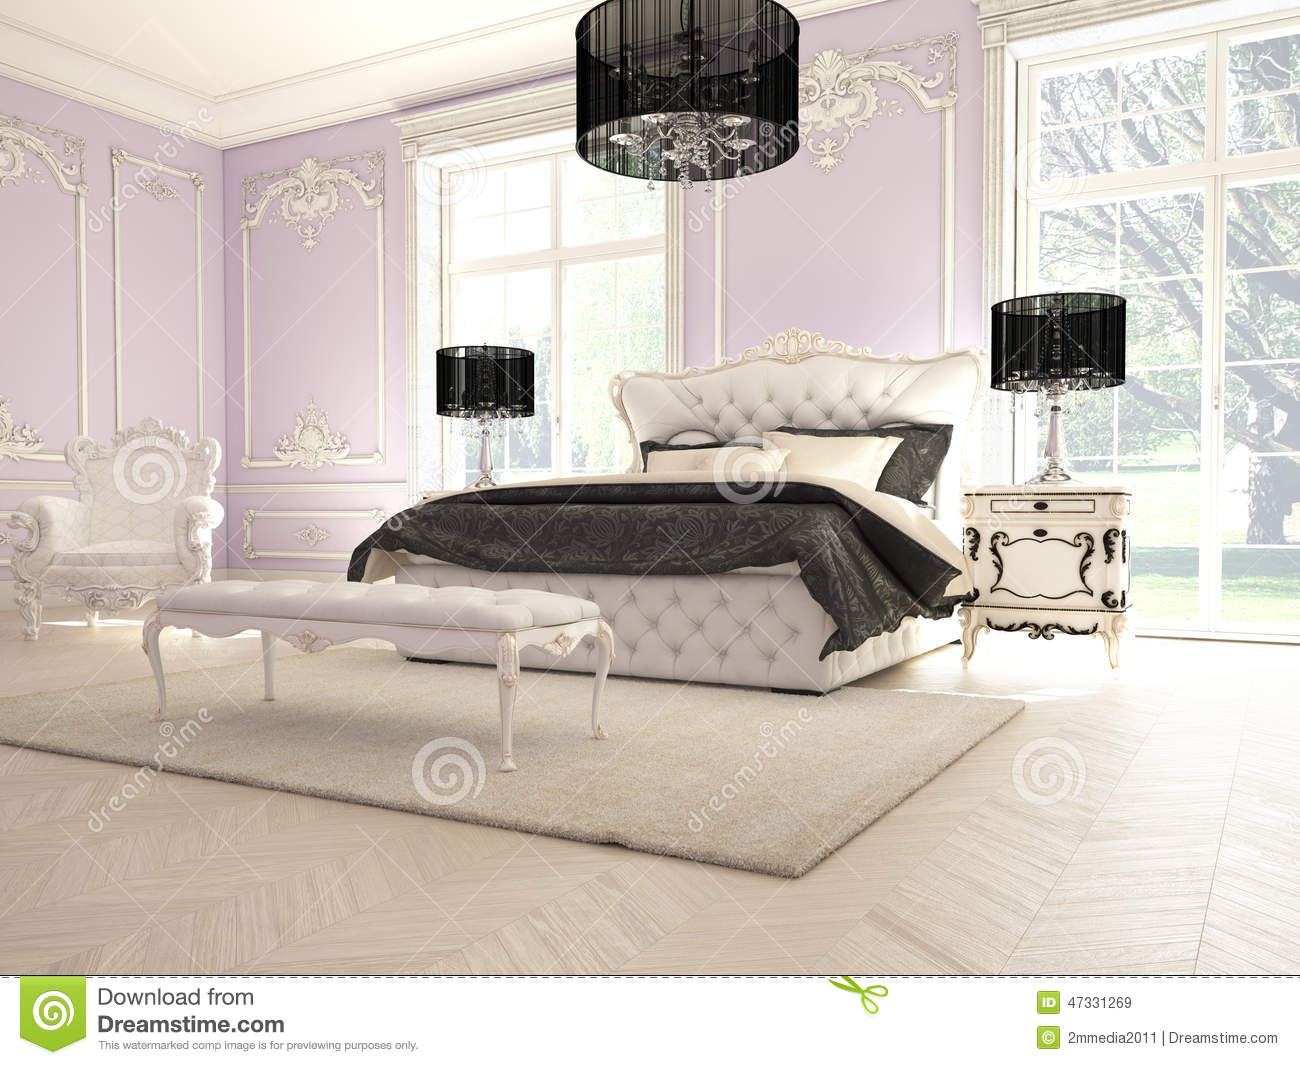 int rieur d 39 une chambre coucher classique de style dans le luxe photo stock image 47331269. Black Bedroom Furniture Sets. Home Design Ideas